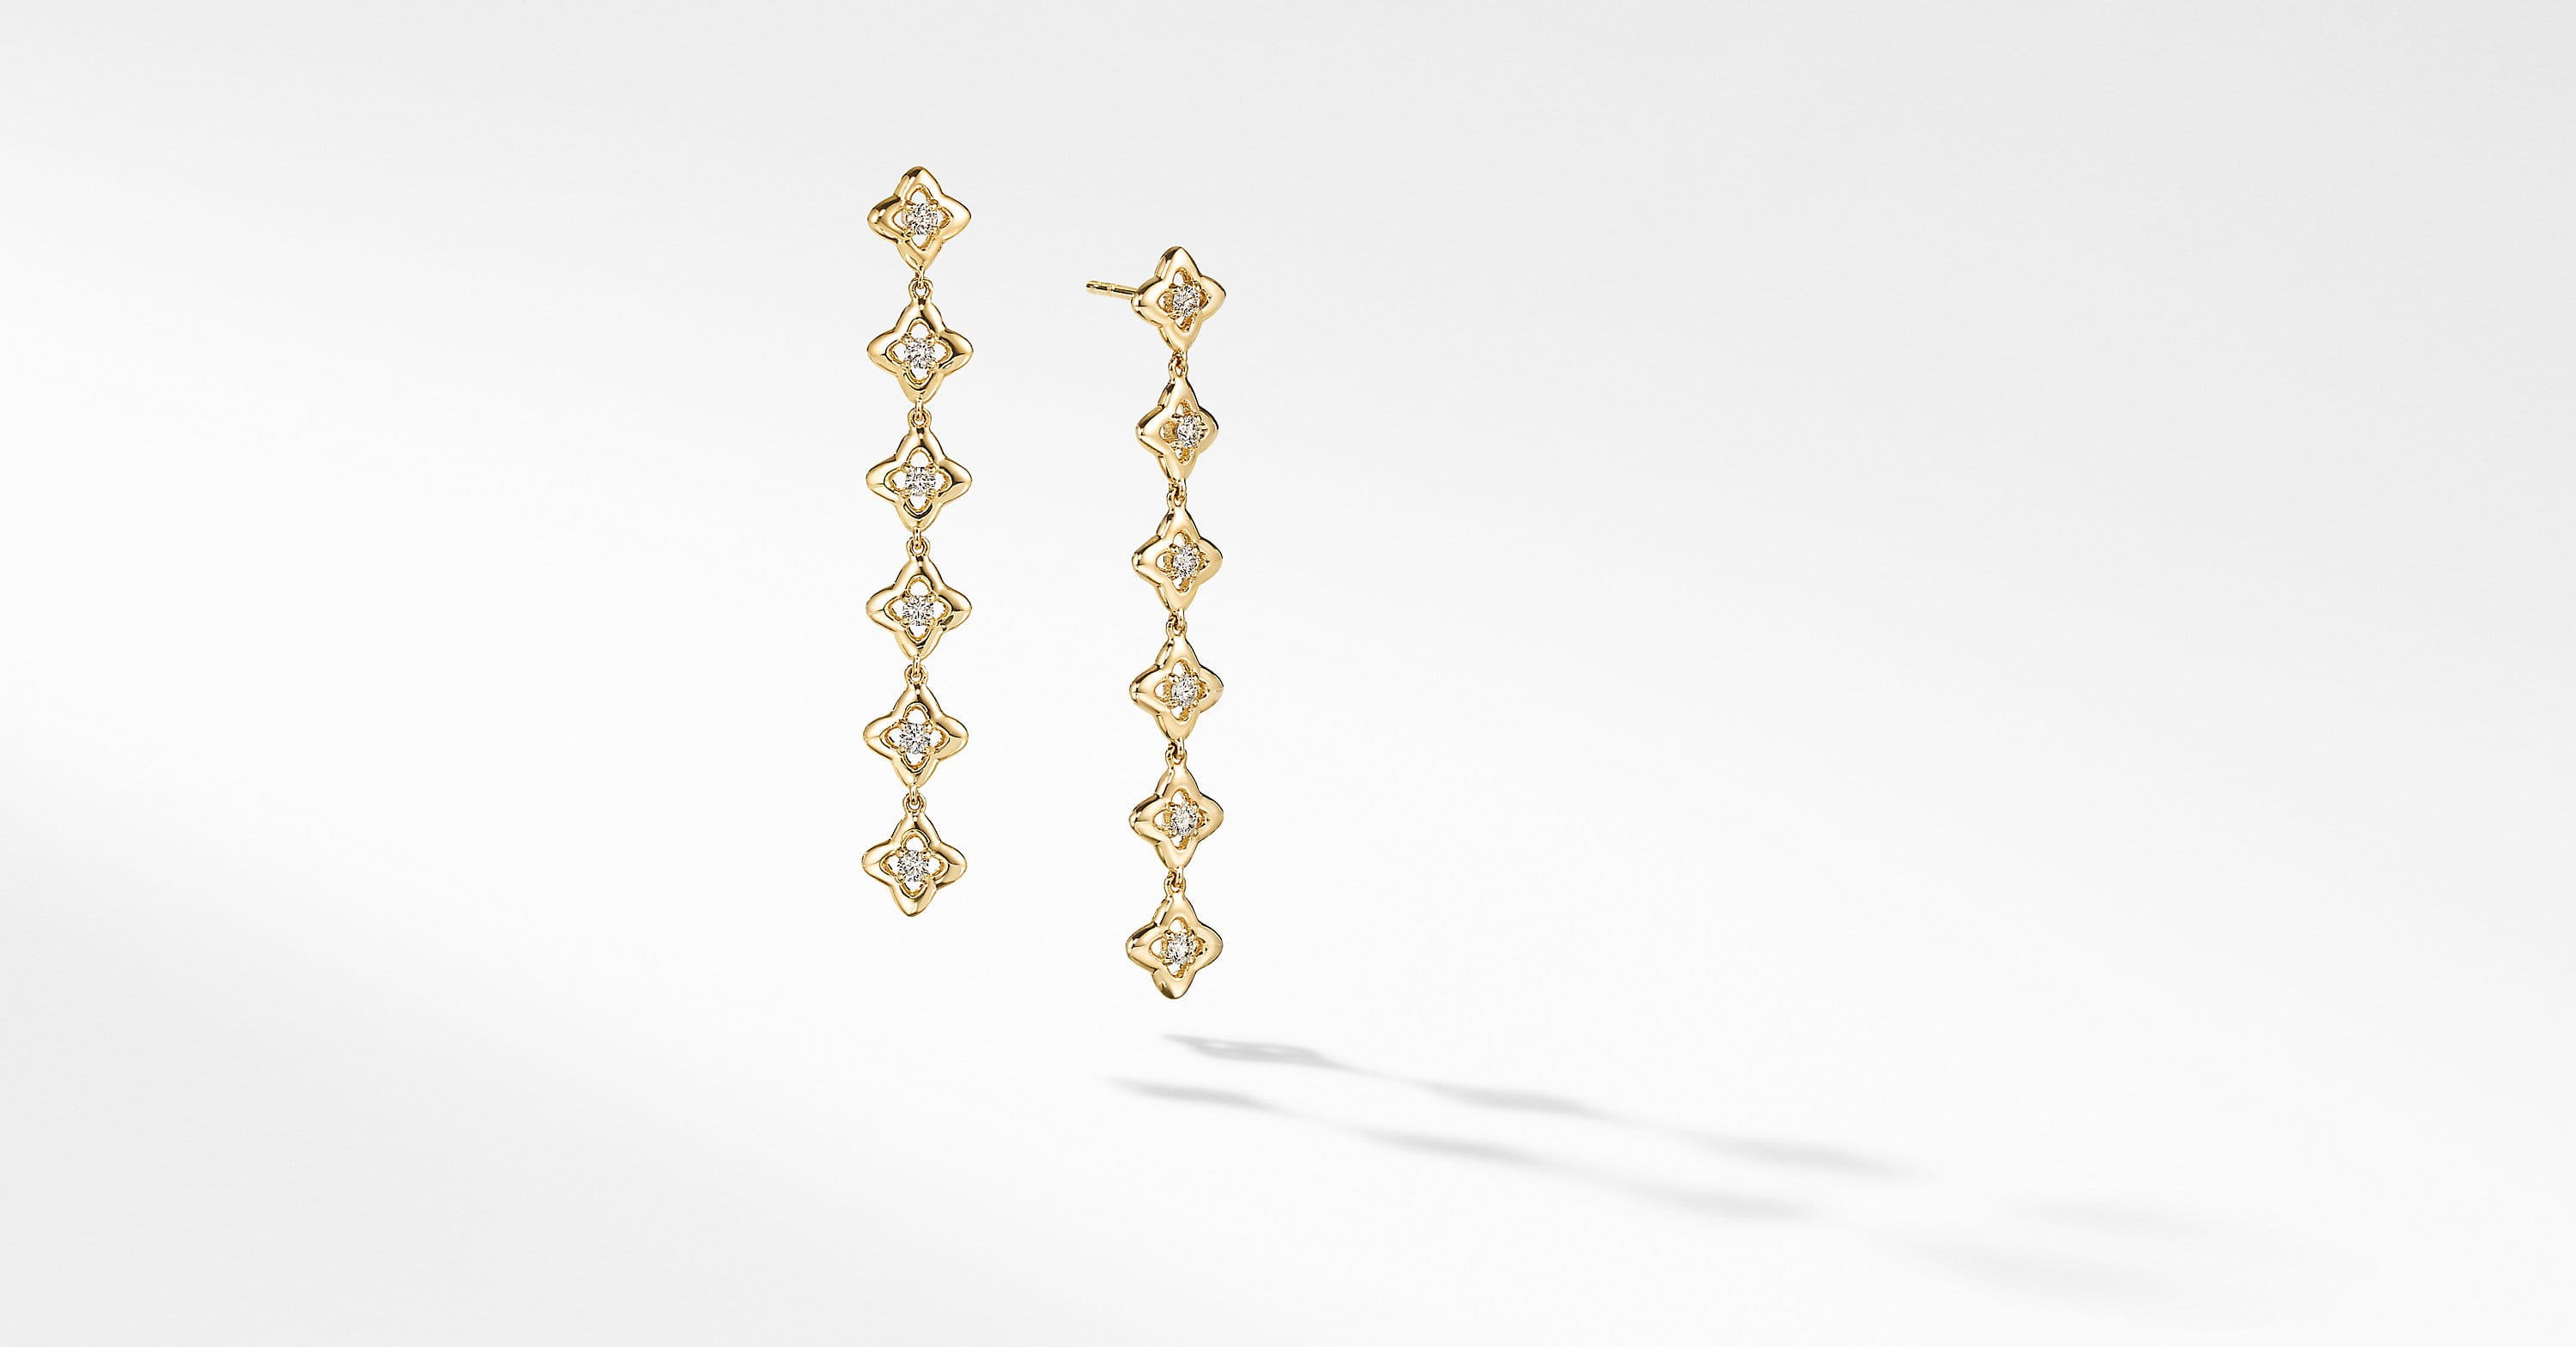 Long Drop Earrings in 18K Yellow Gold with Diamonds